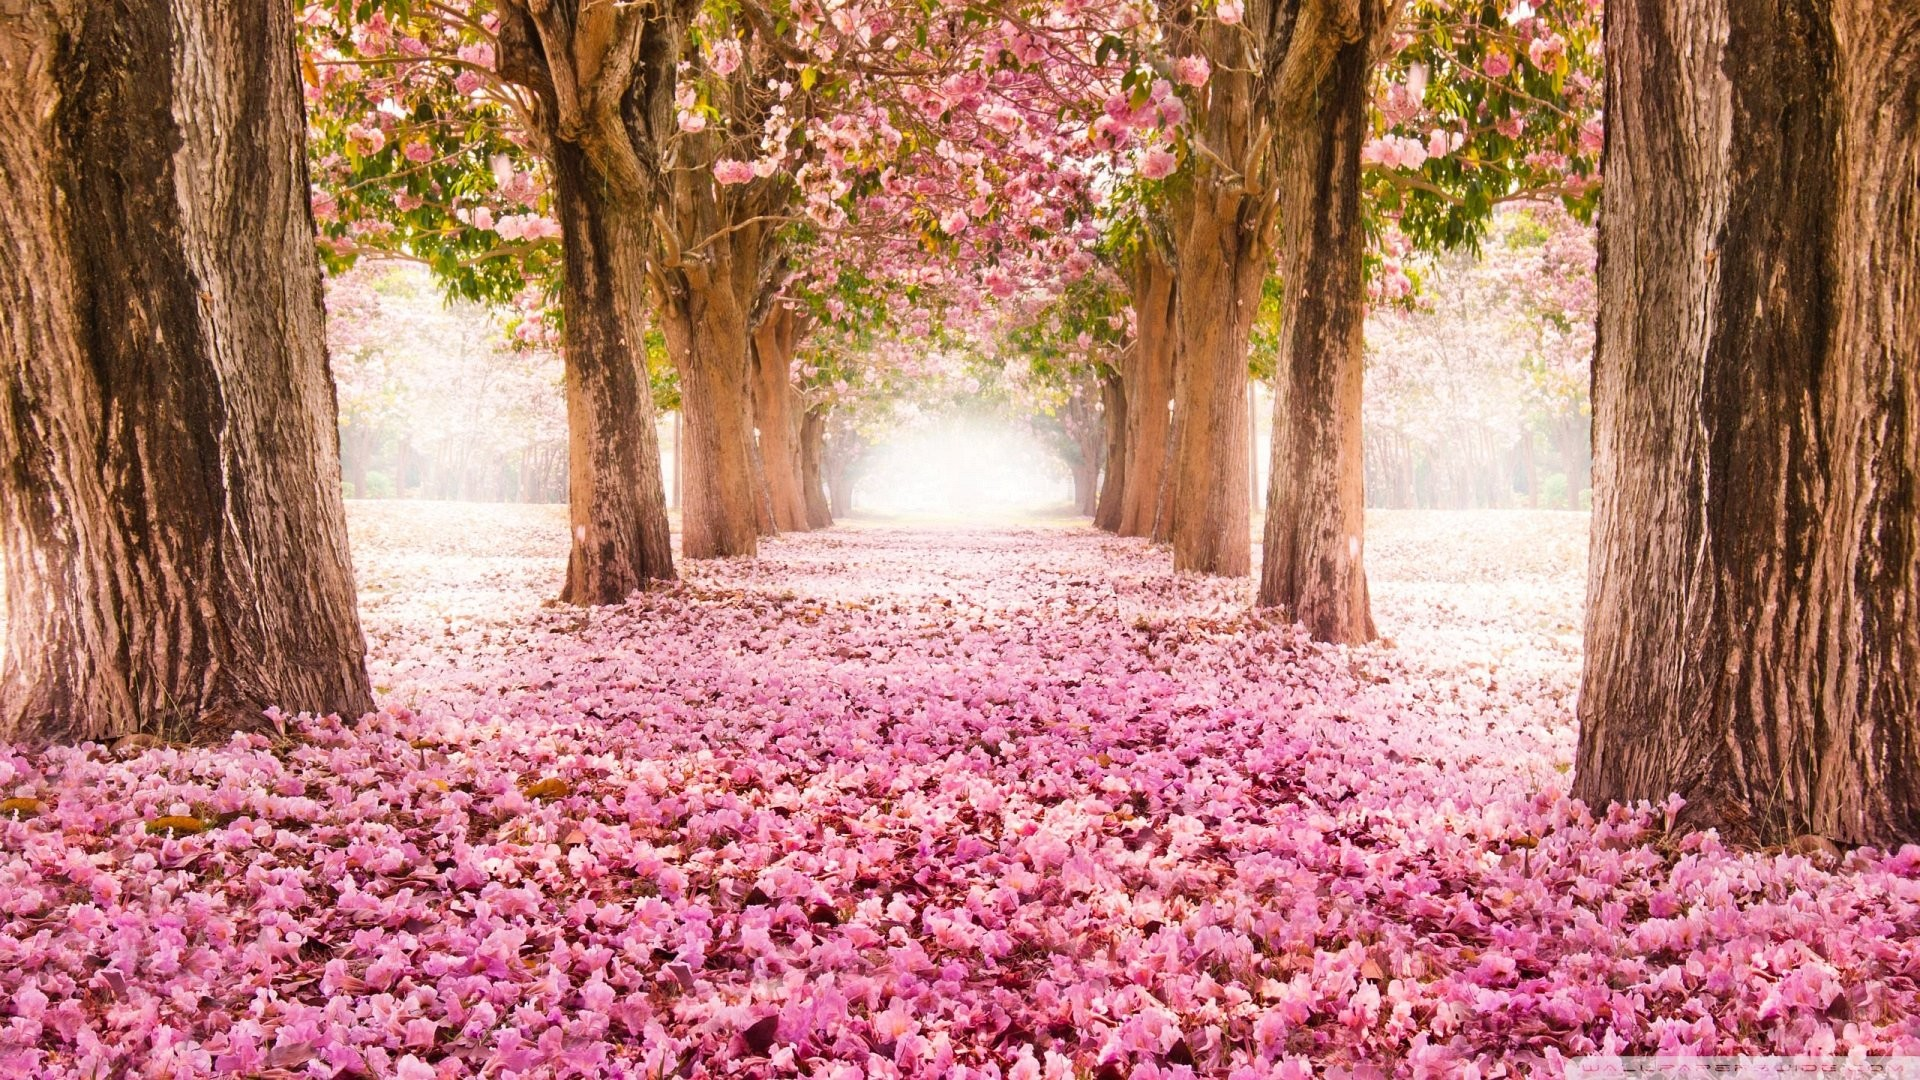 1920x1080 Wallpaper petals pink path romantic 1920 x 1080 full hd